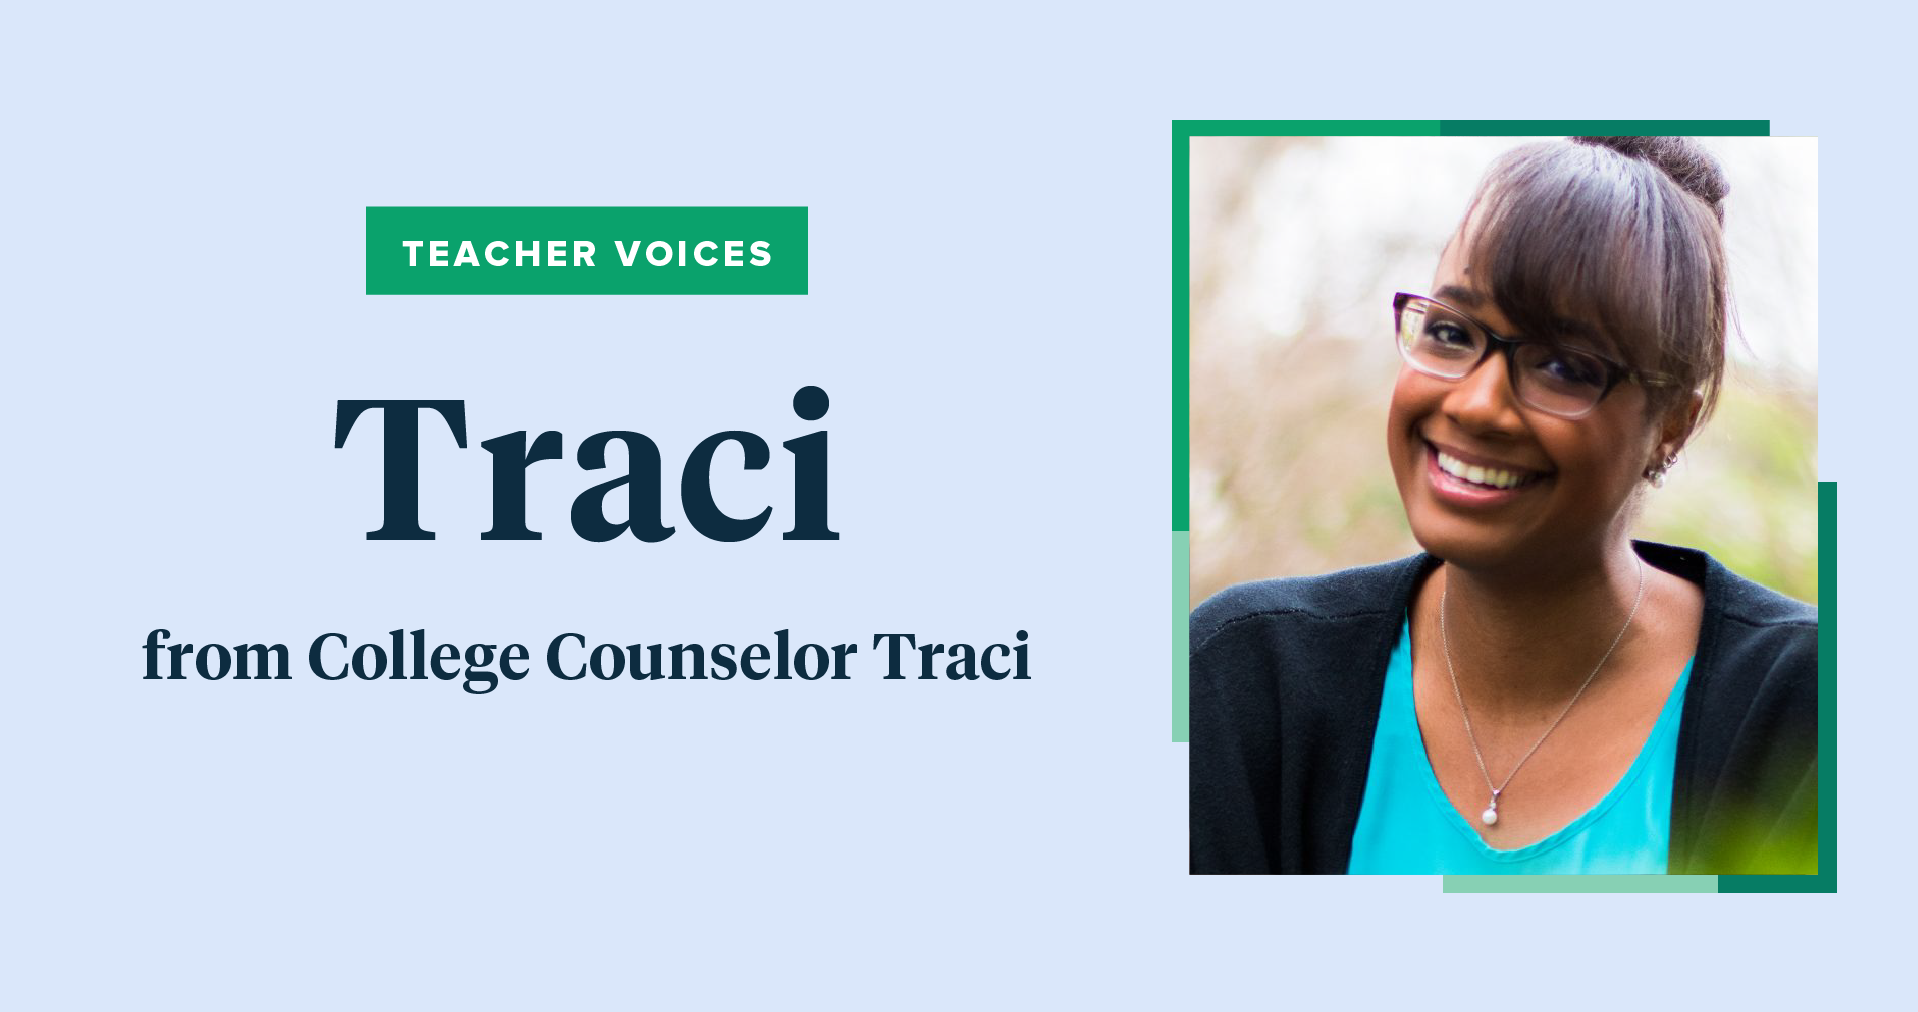 Teacher Voices interview featuring College Counselor Traci